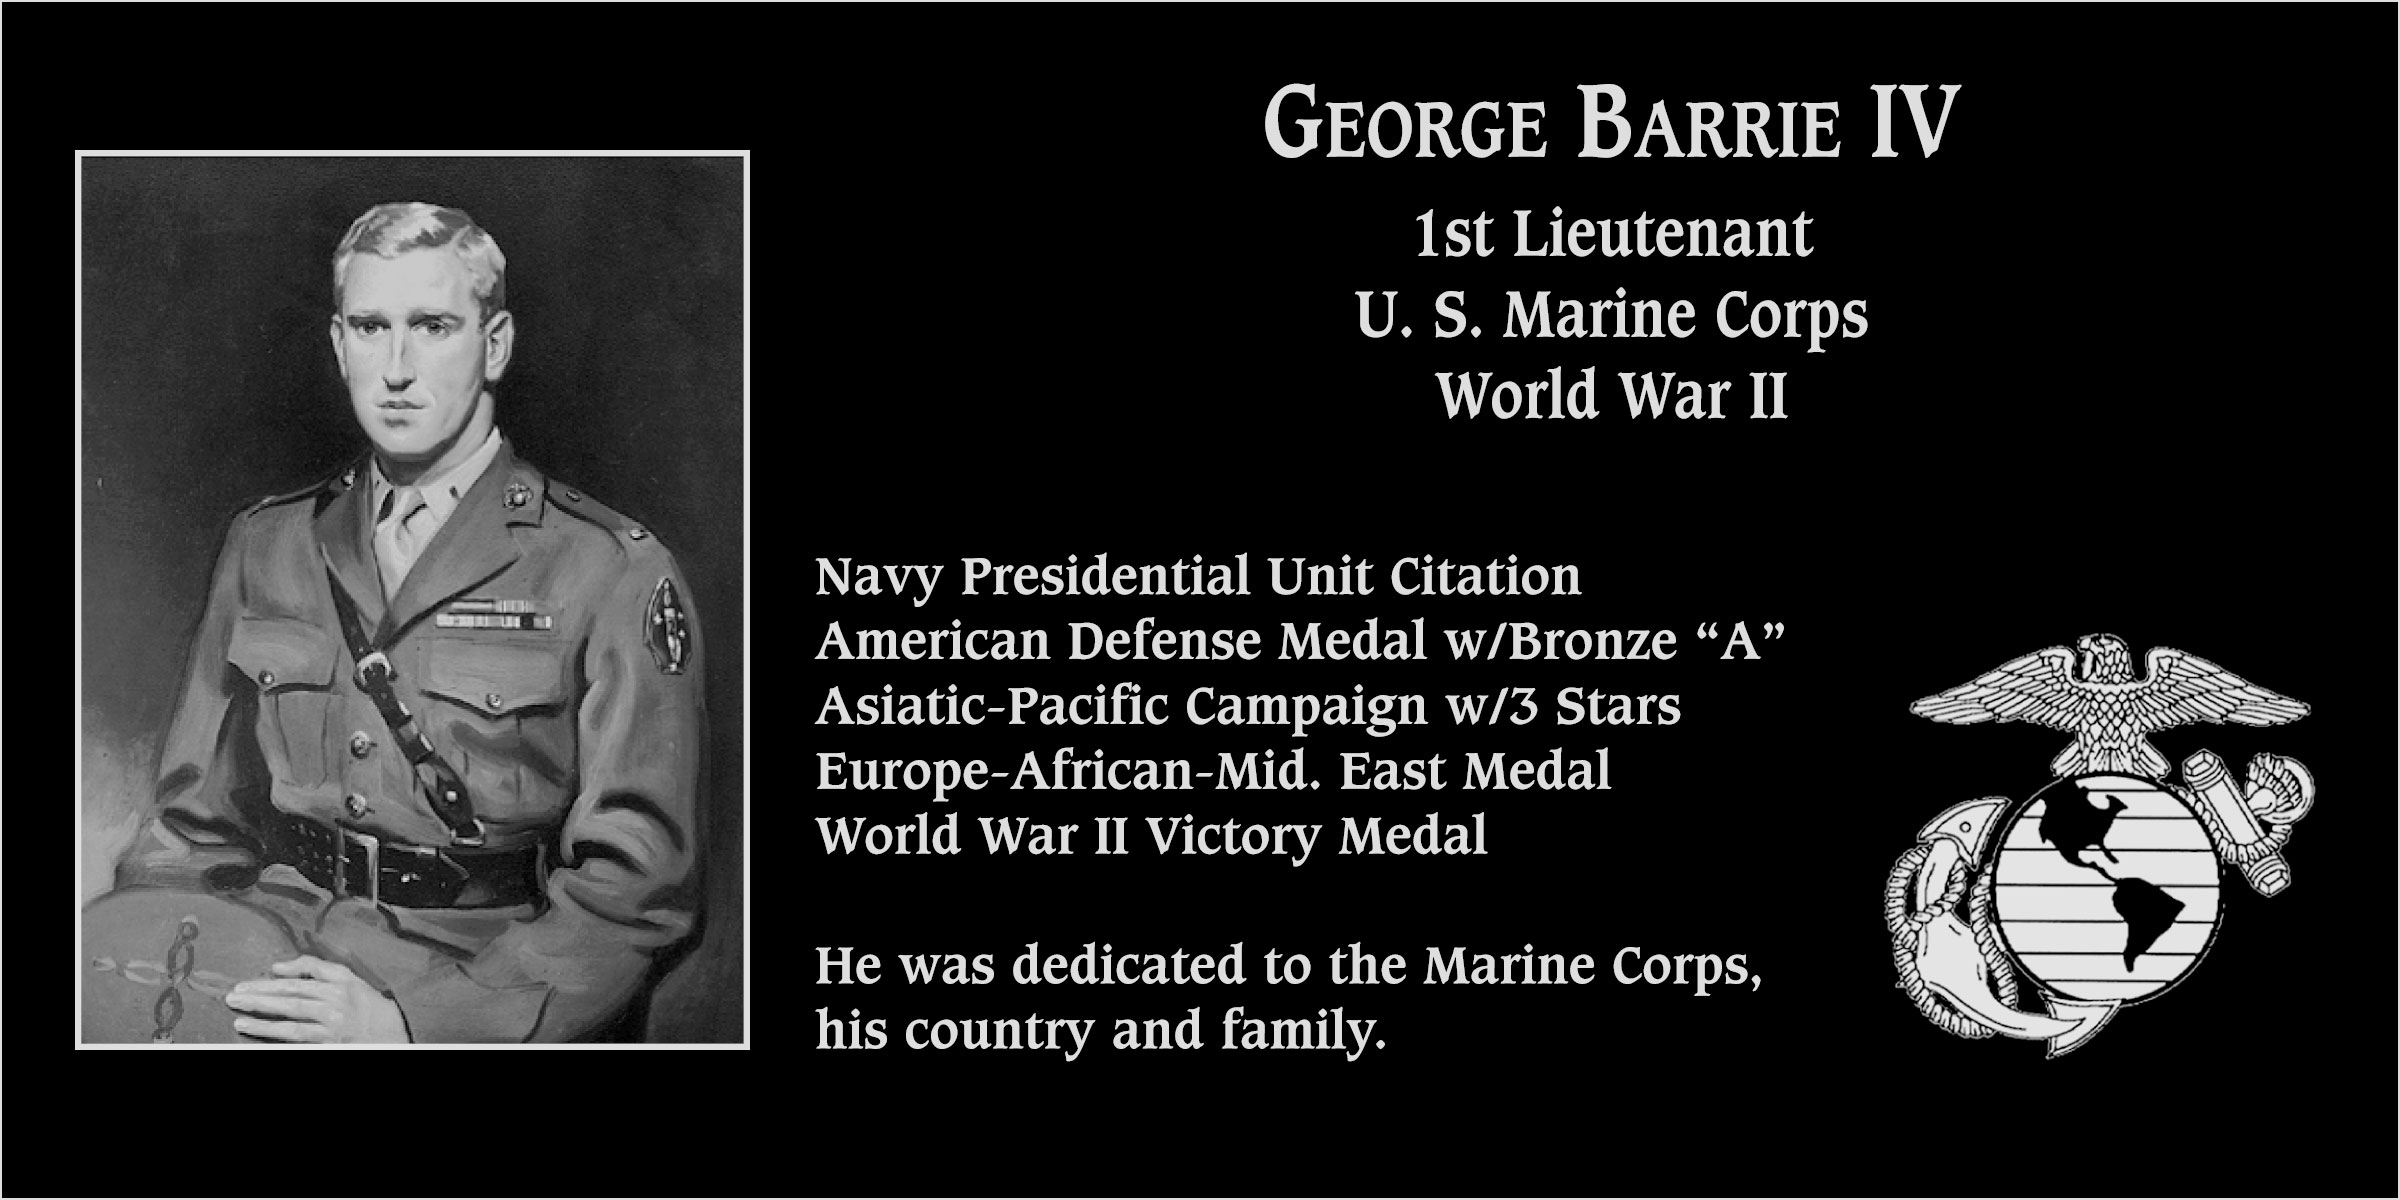 George Barrie, IV